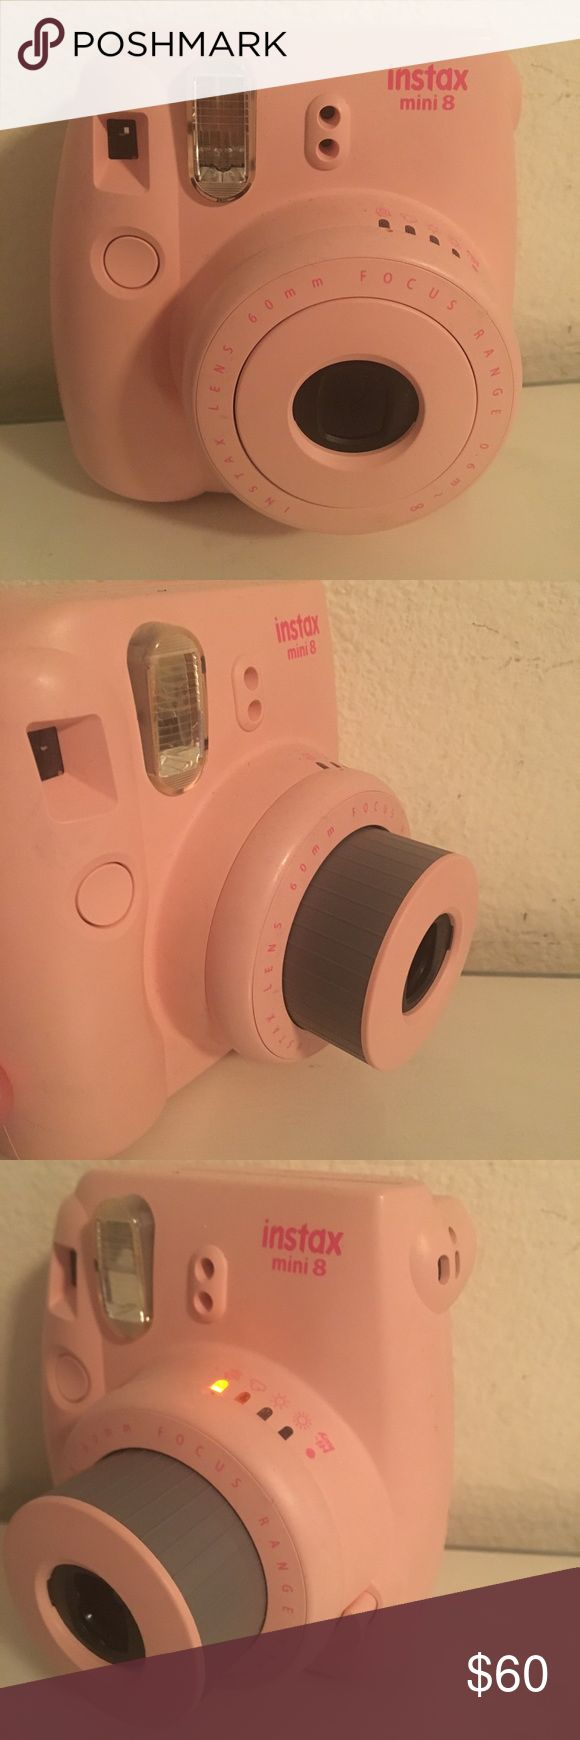 Fujifilm instax mini Fujifilm instax mini 8 instant camera (pink), never really used it so looking to sell Other